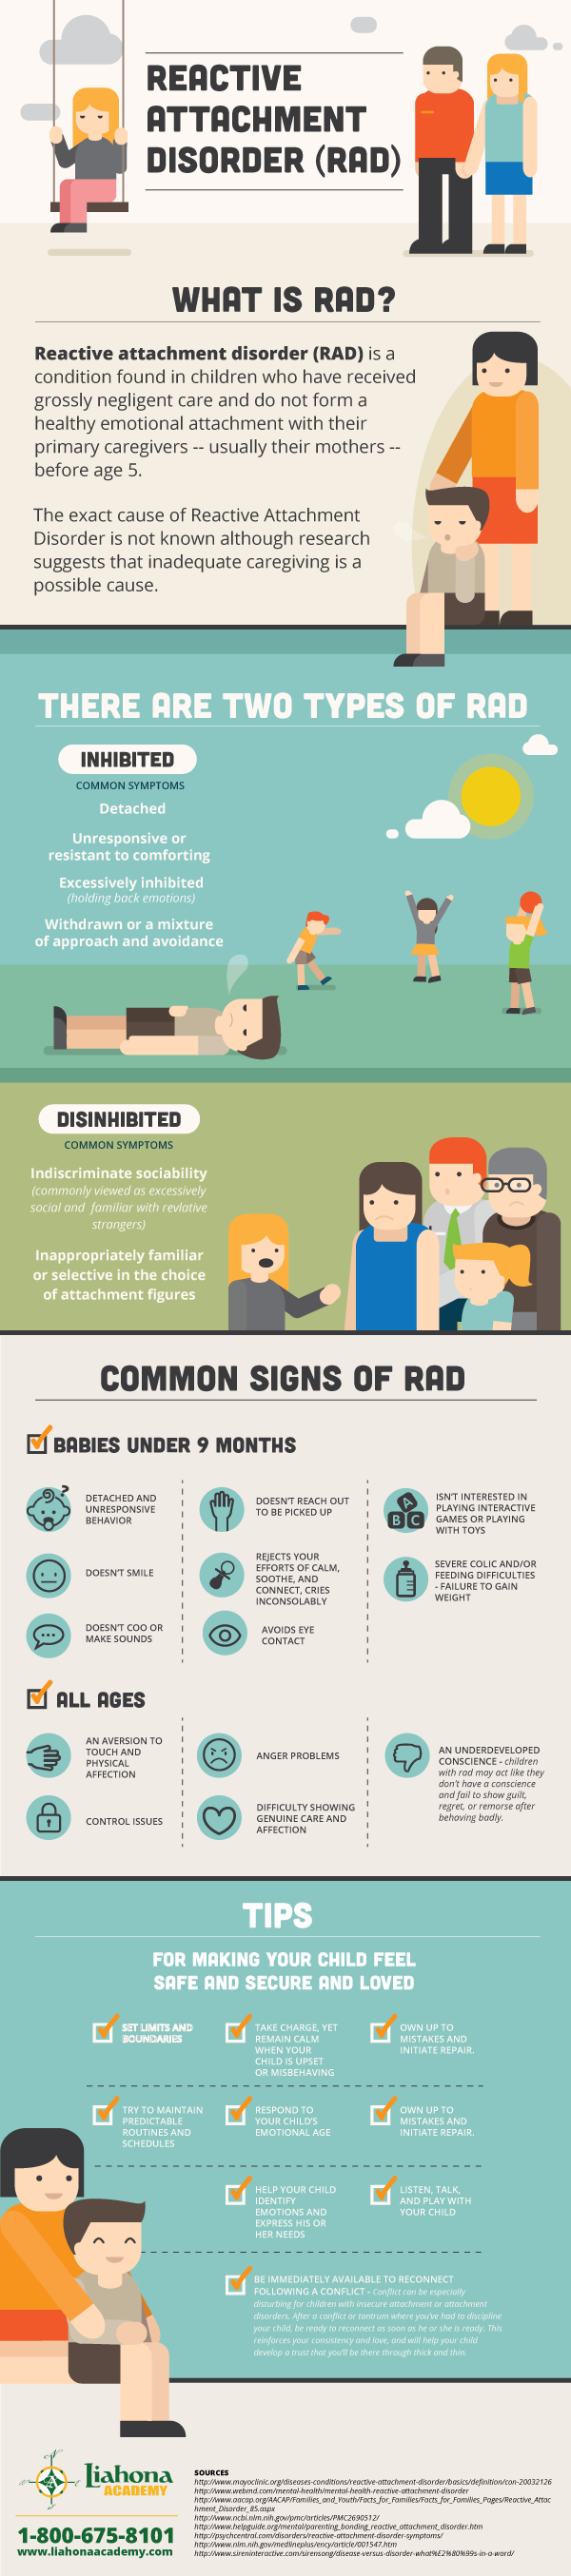 Reactive-Attachment-Disorder-RAD-Infographic